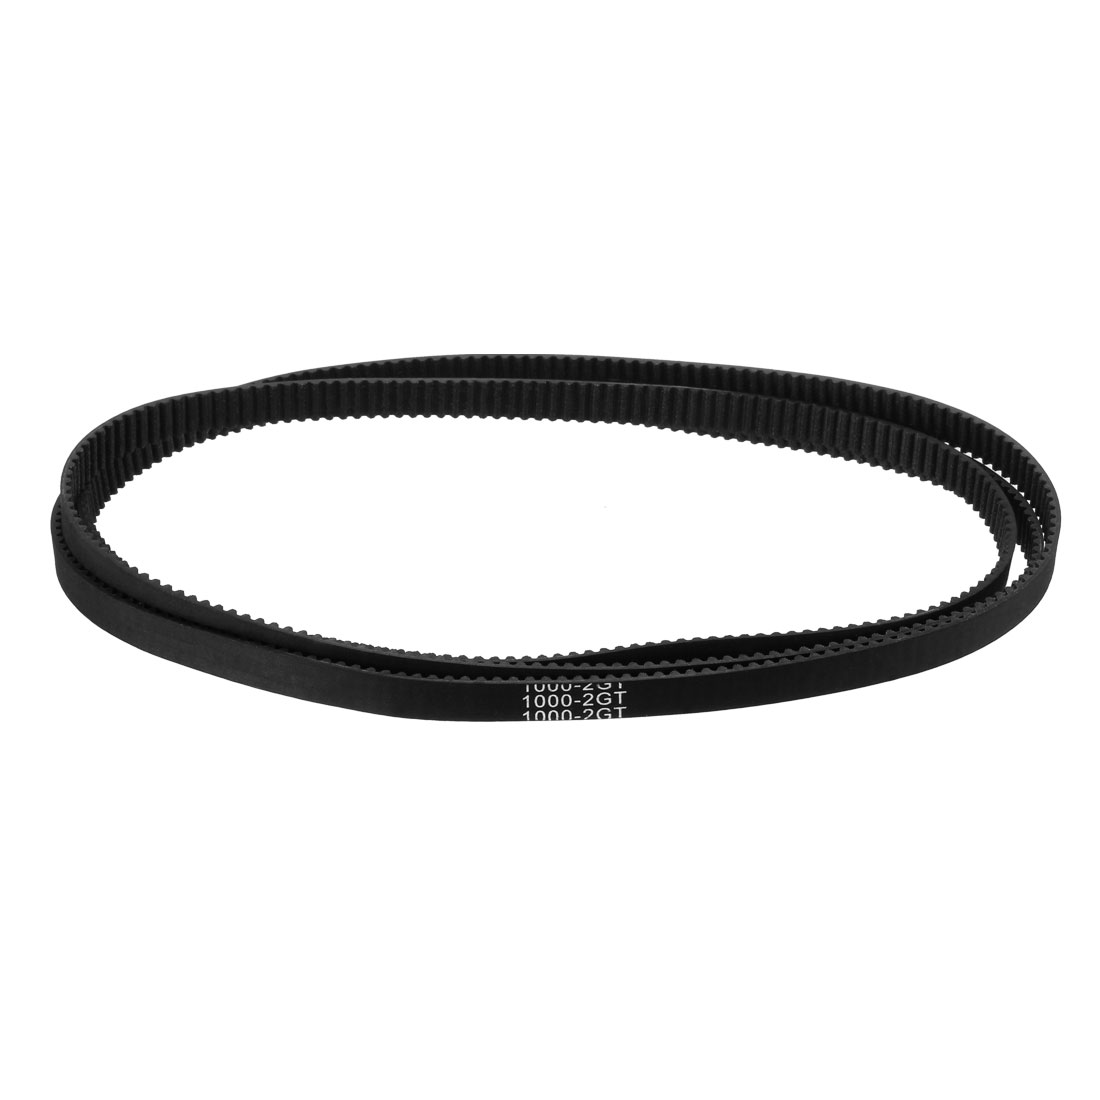 GT2 Timing Belt 1 Meter Closed Fit Synchronous Wheel for 3D Printer